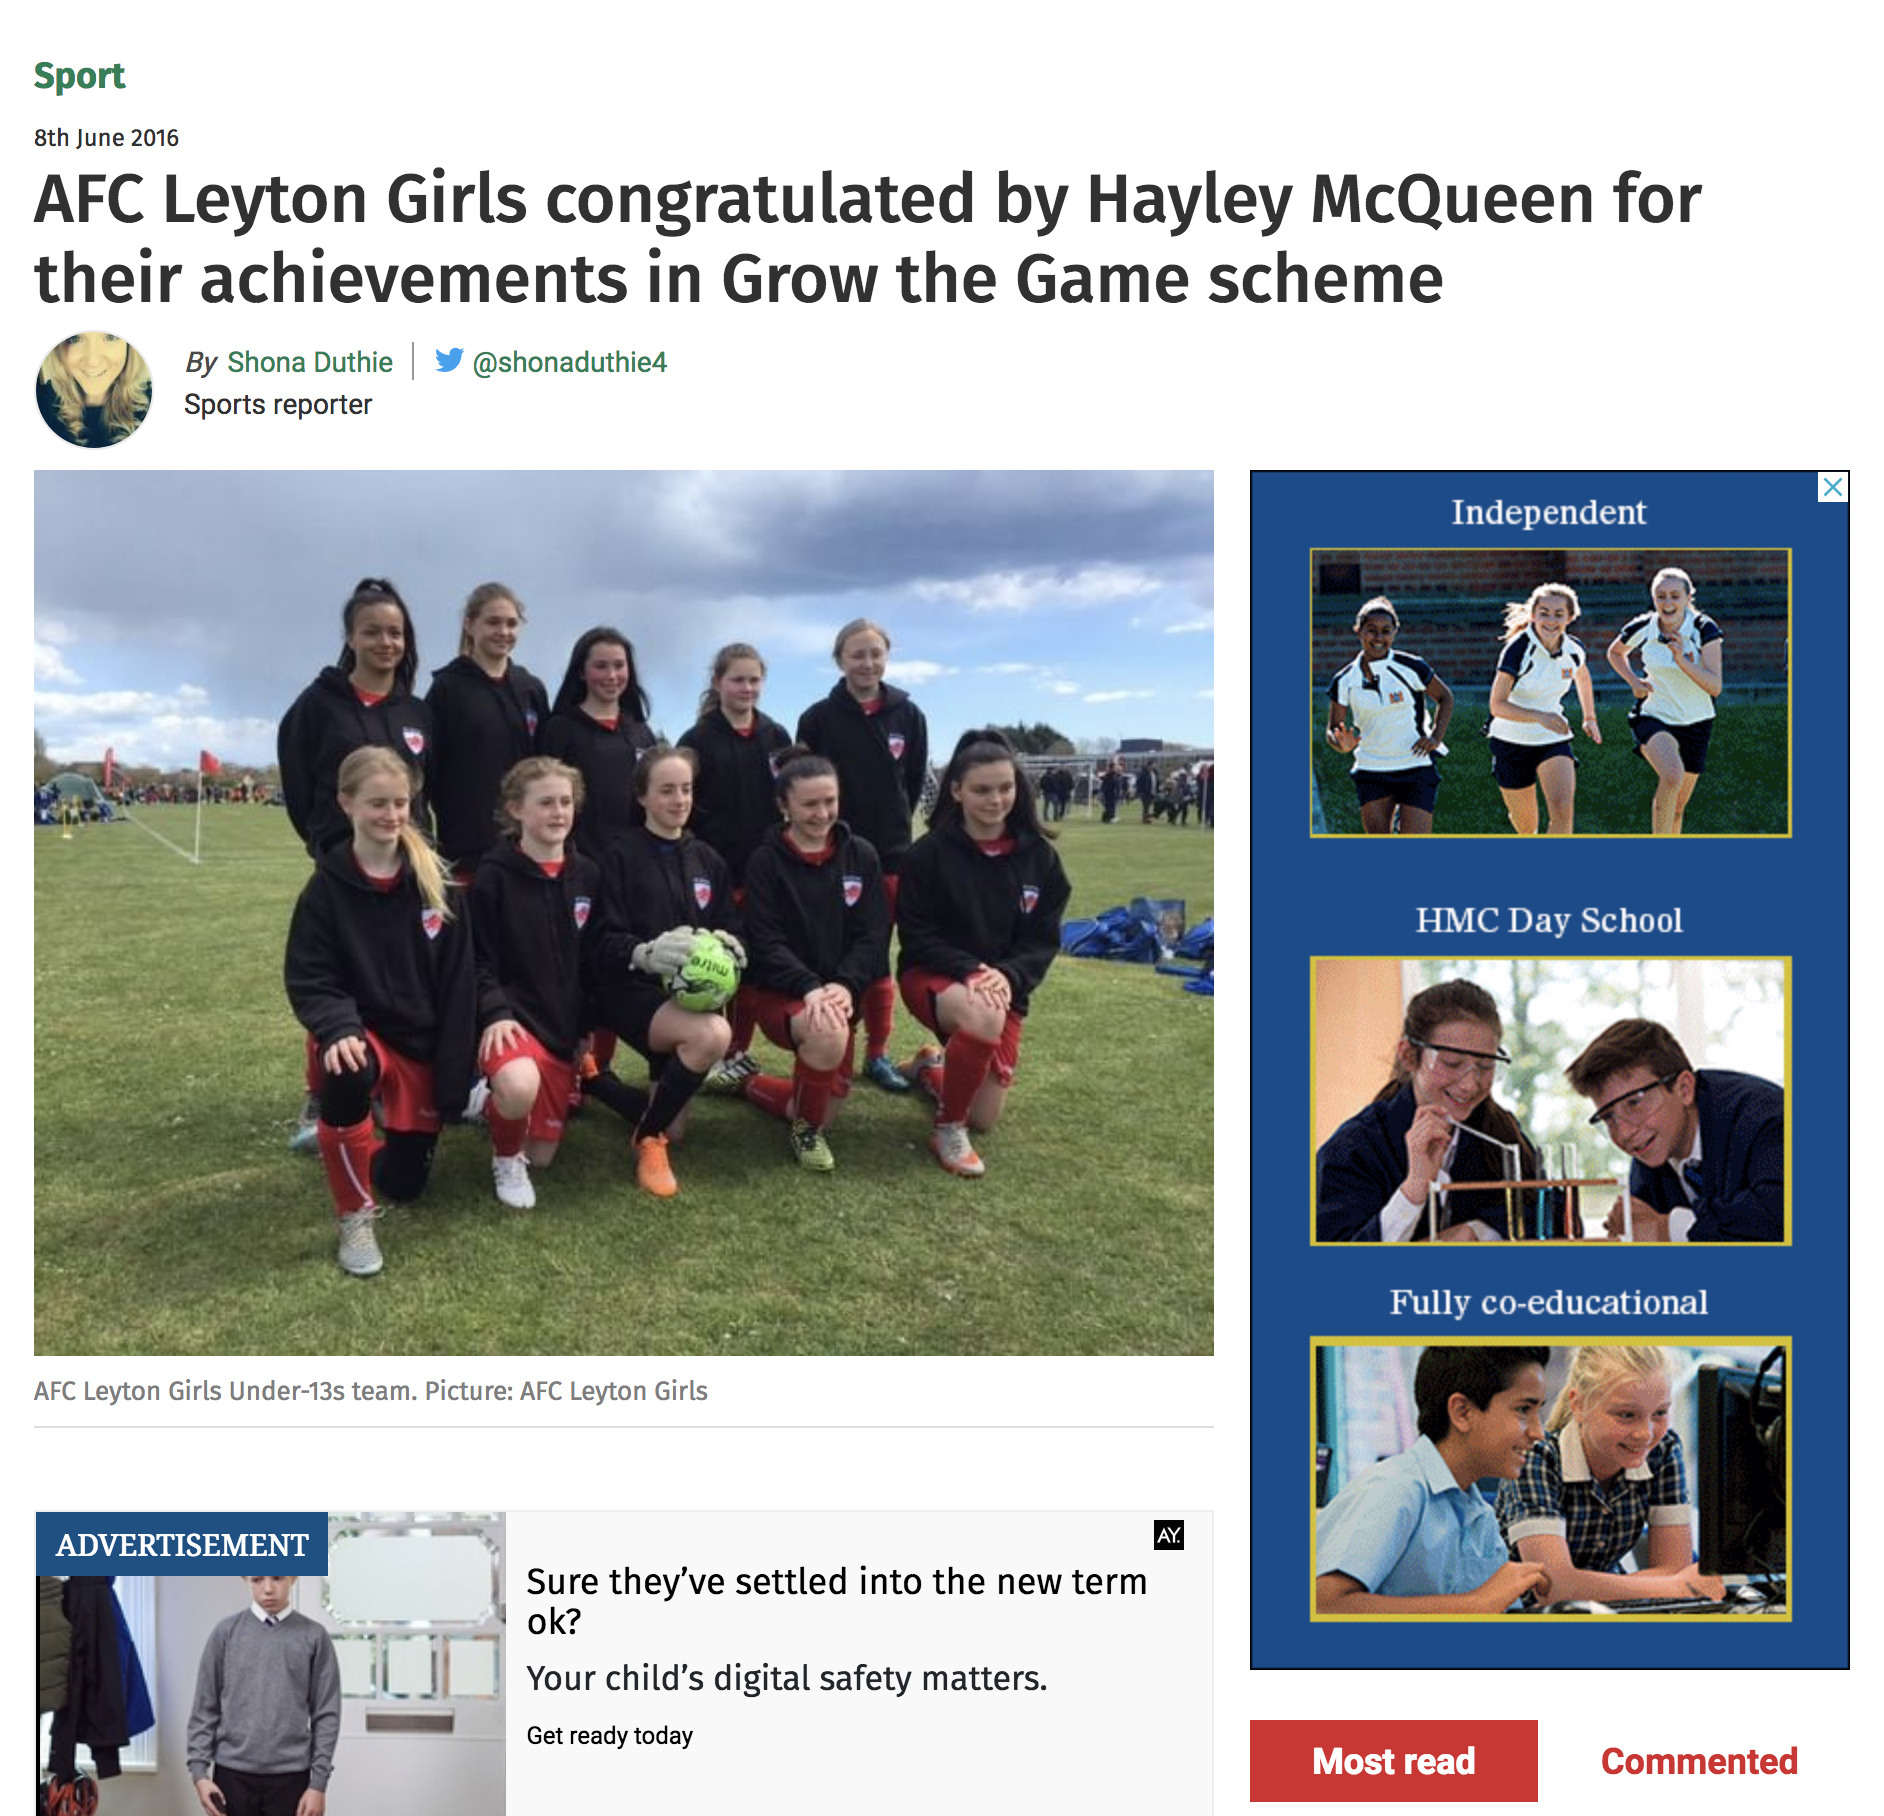 AFC Leyton Girls congratulated by Hayley McQueen for their achievements in Grow the Game scheme